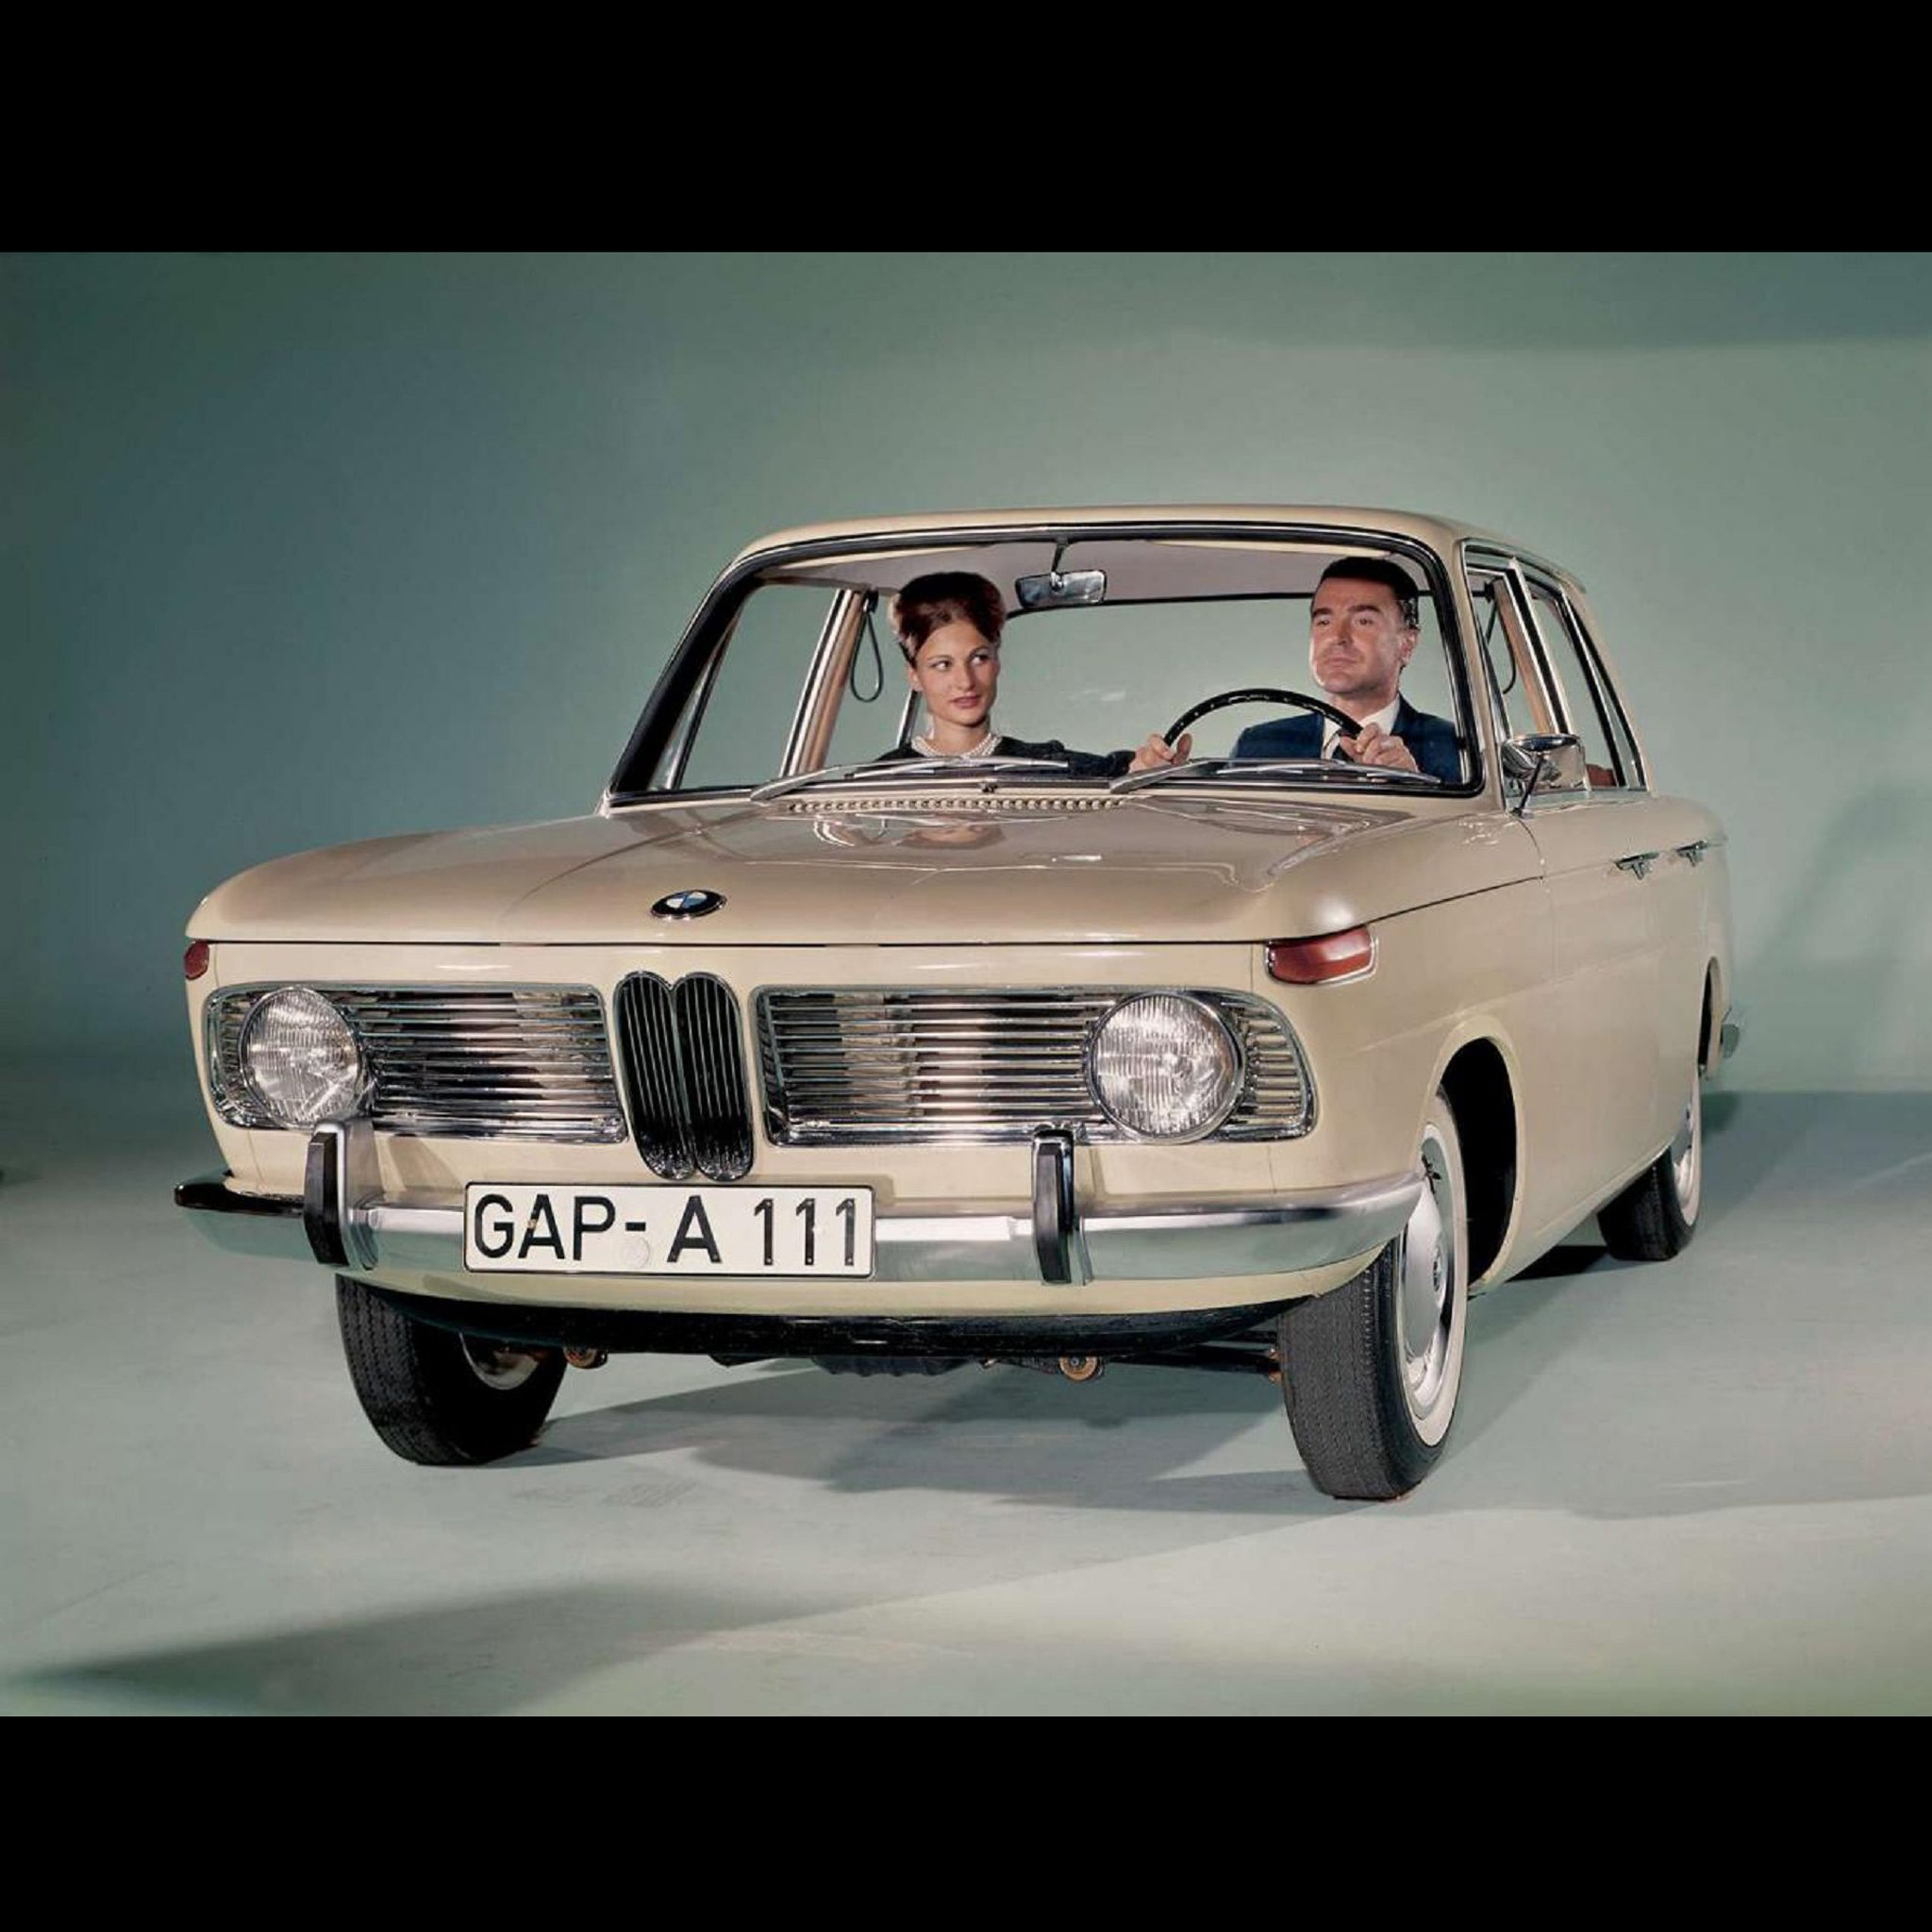 Original: 1962, Old BMW 1500, 001, Cool Cars iPad wallpapers and Backgrounds